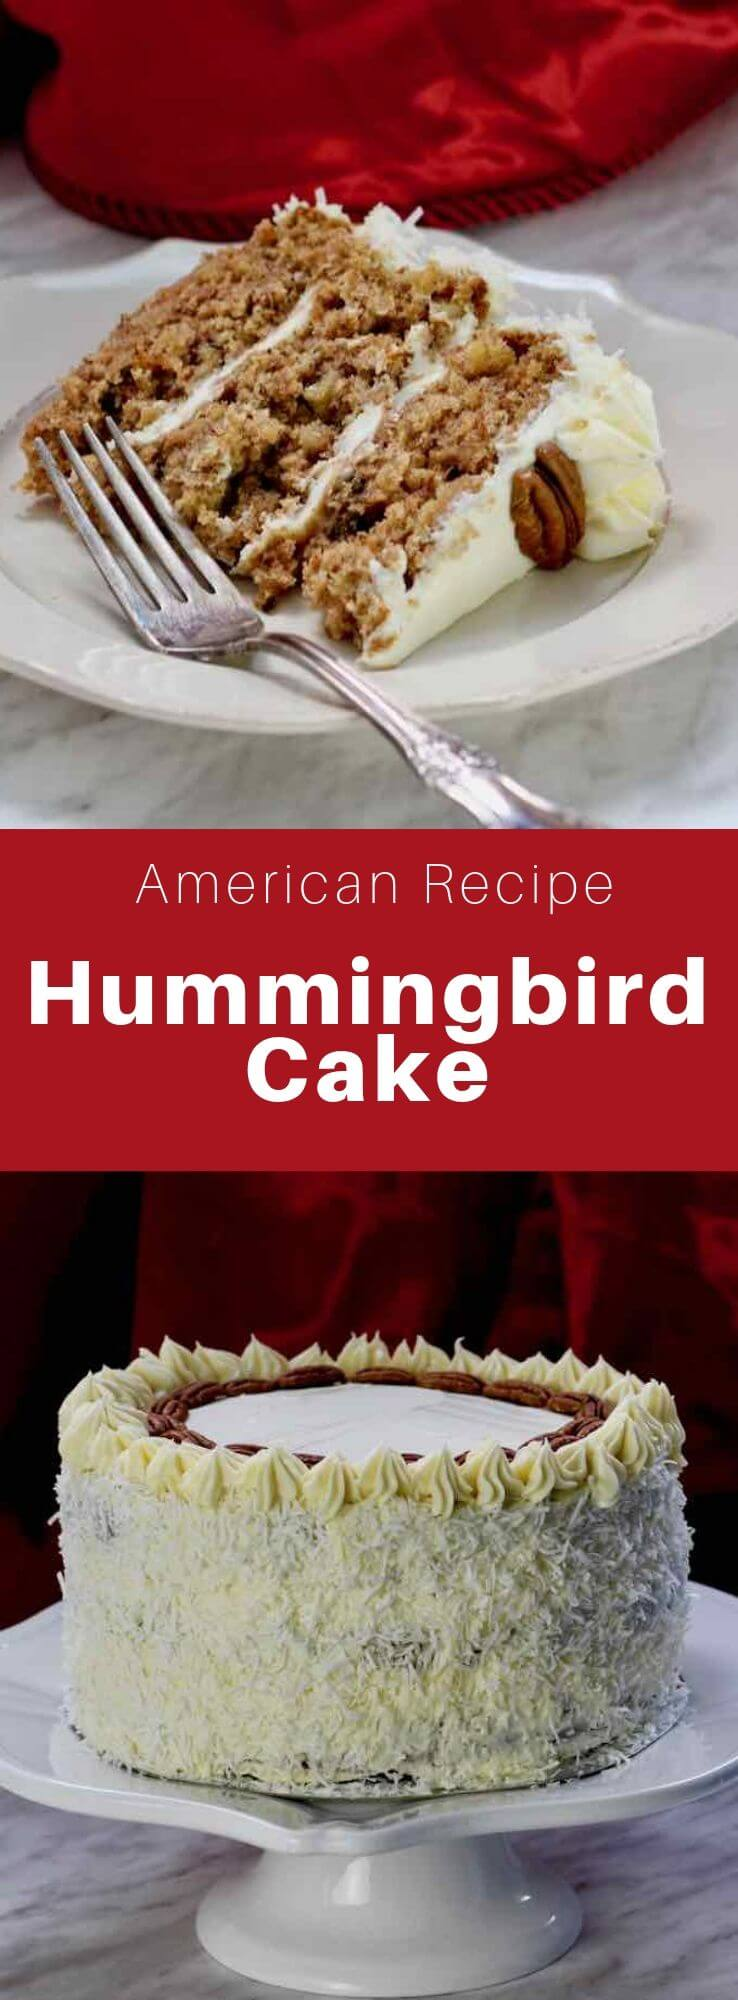 The hummingbird cake is a Southern cake of Jamaican origin prepared with banana, lemon, pineapple, coconut, vanilla, pecan and cream cheese. #SouthernFood #SouthernRecipe #SouthernCuisine #AmericanRecipe #AmericanFood #AmericanCuisine #WorldCuisine #196flavors